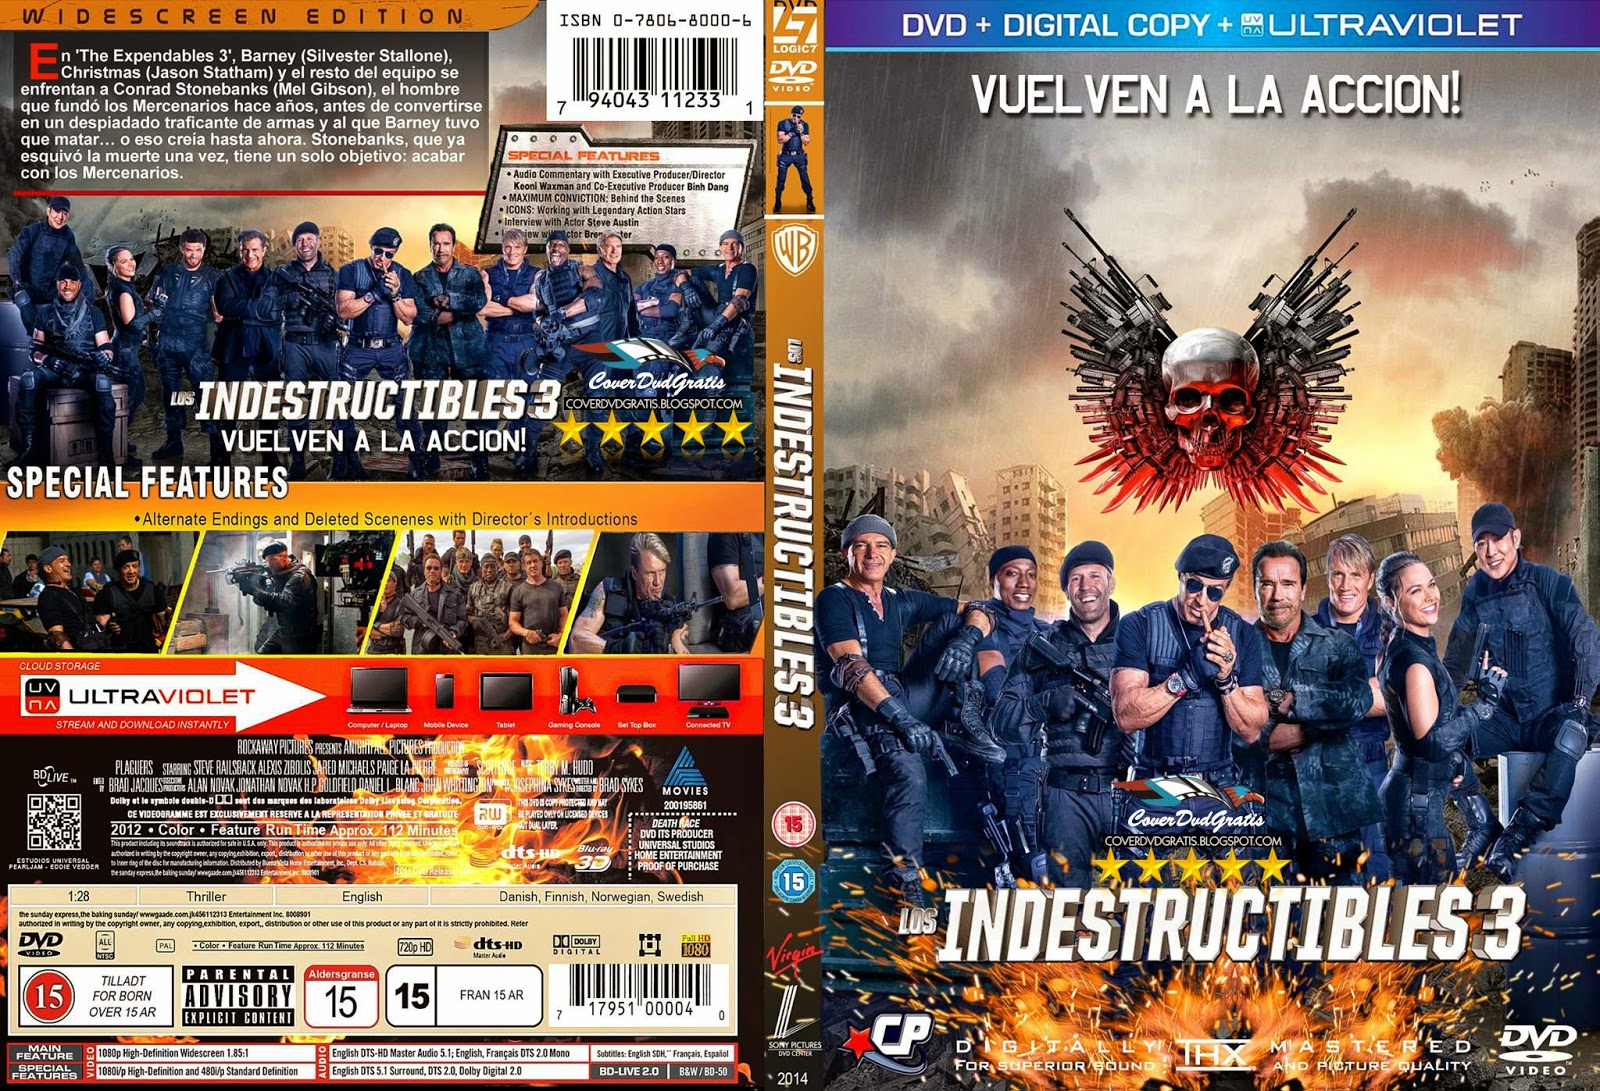 The Expendables 3 DVD Region 2 English audio Amazon